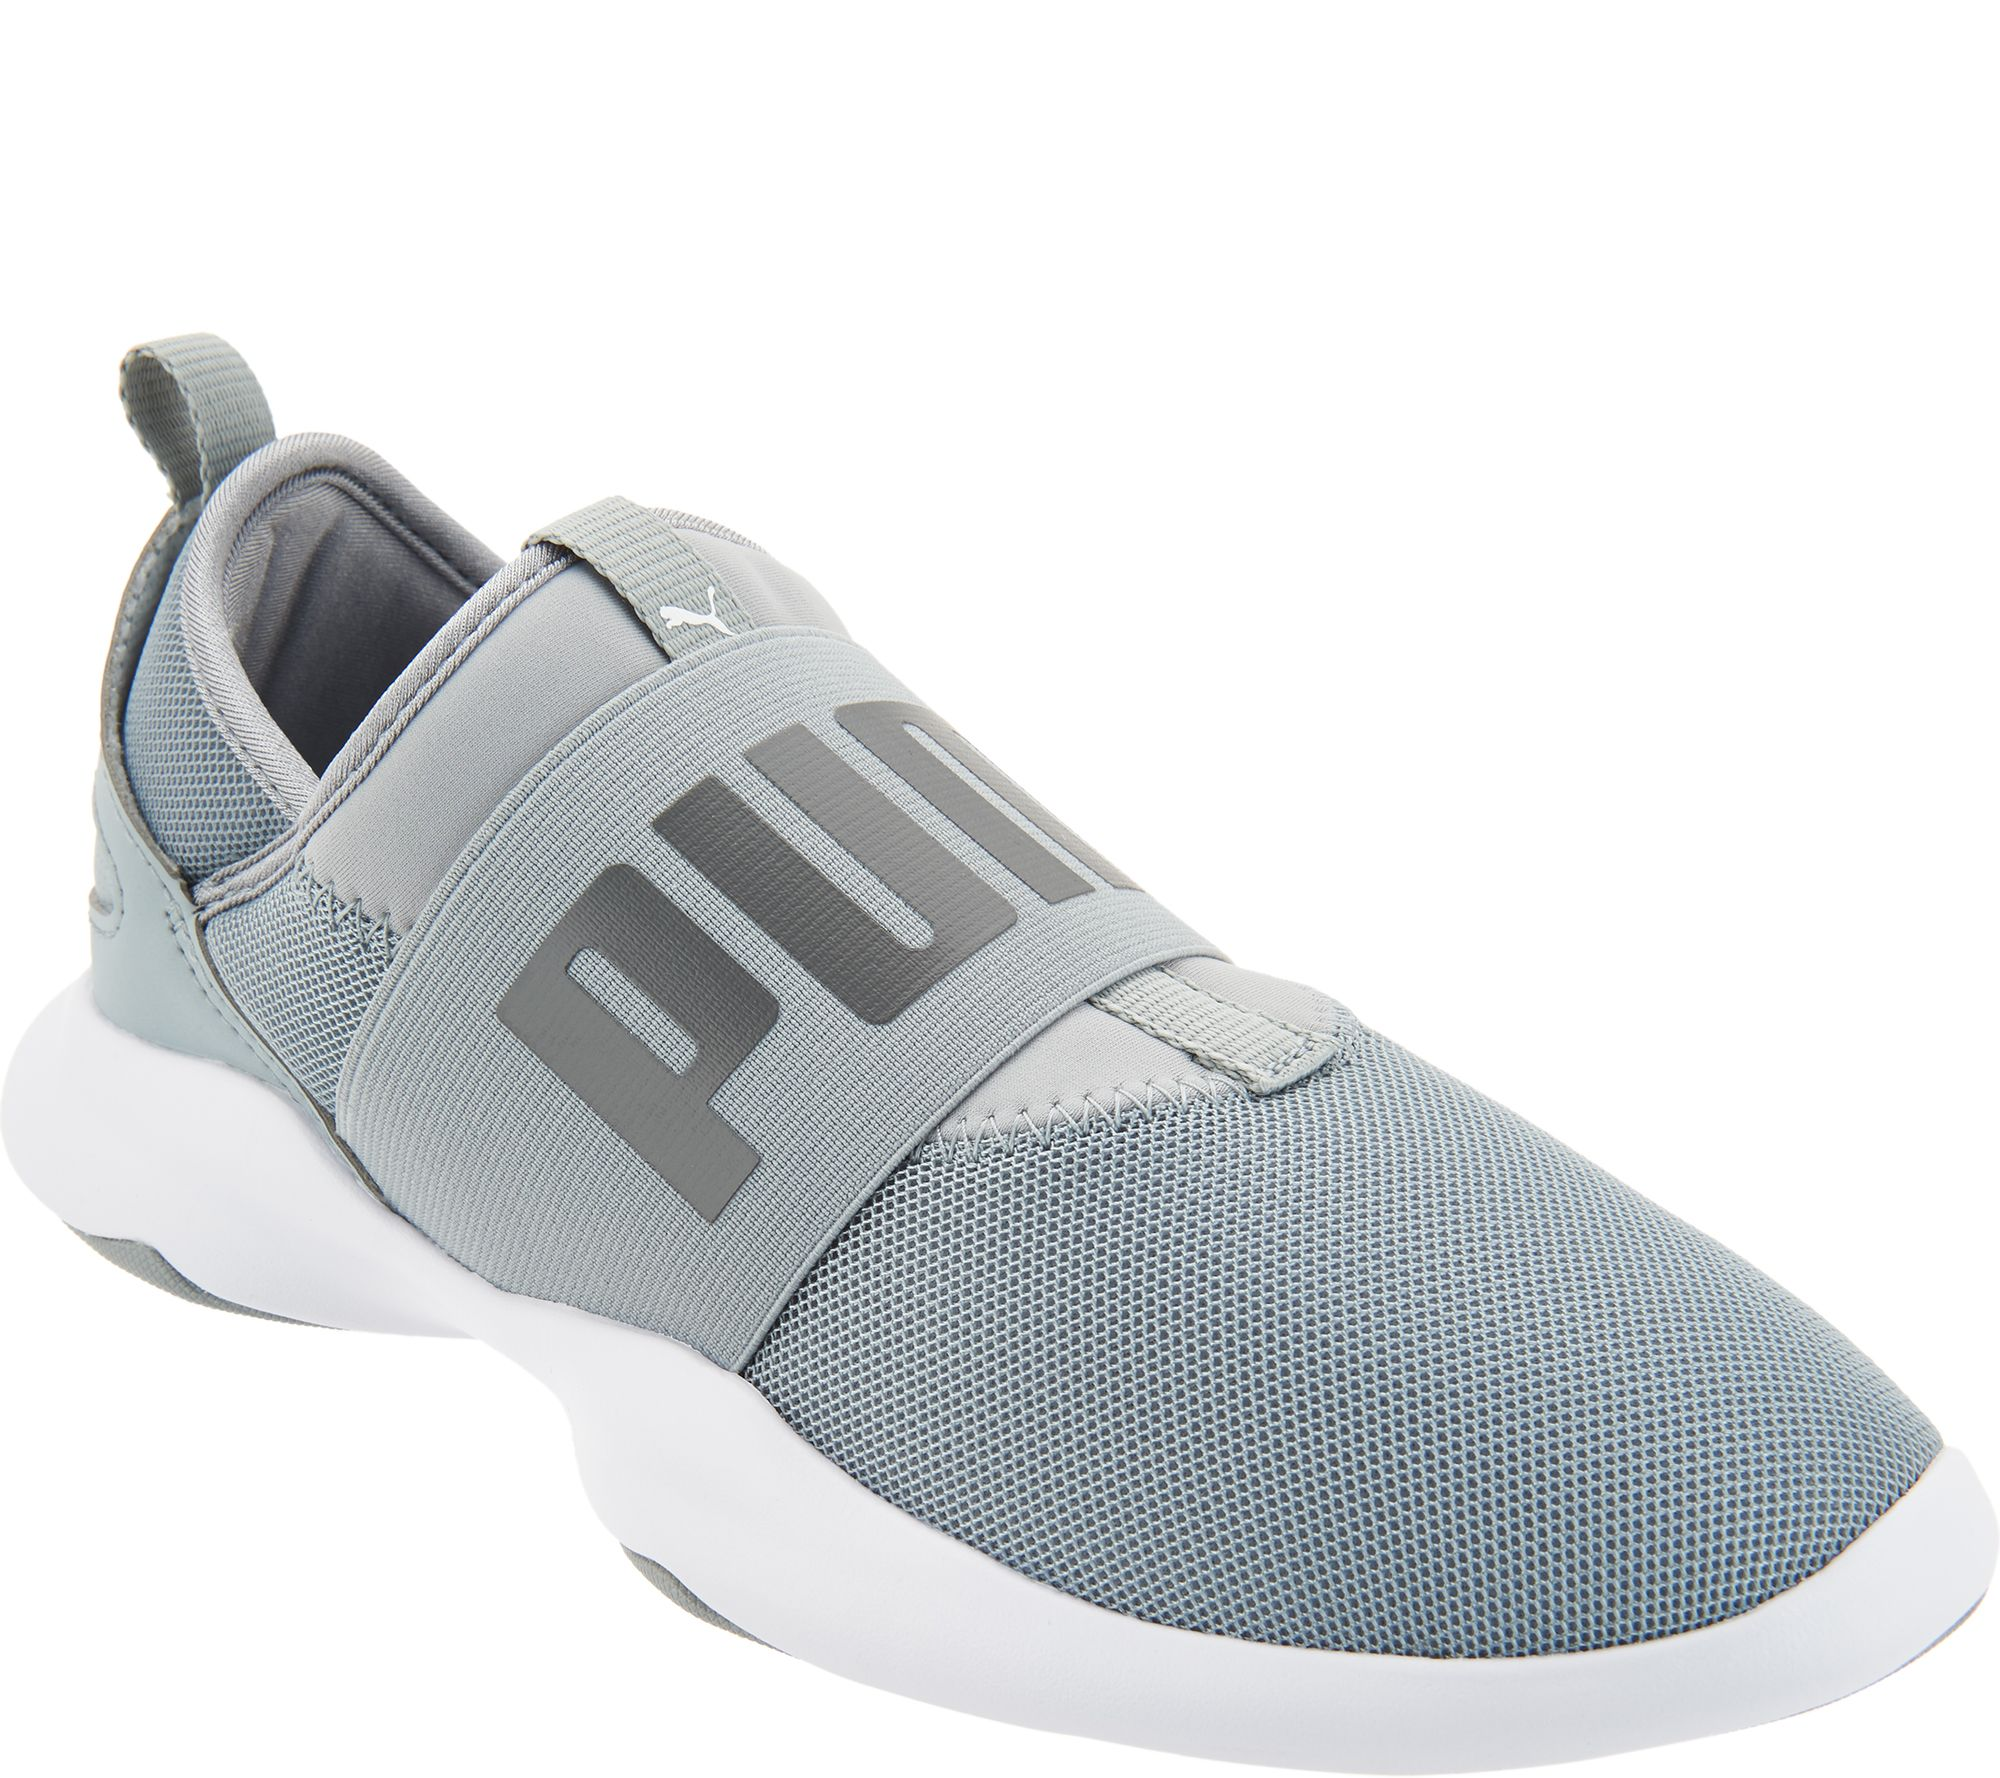 299ace5ca0cc96 PUMA Mesh Slip-On Sneakers - Dare - Page 1 — QVC.com